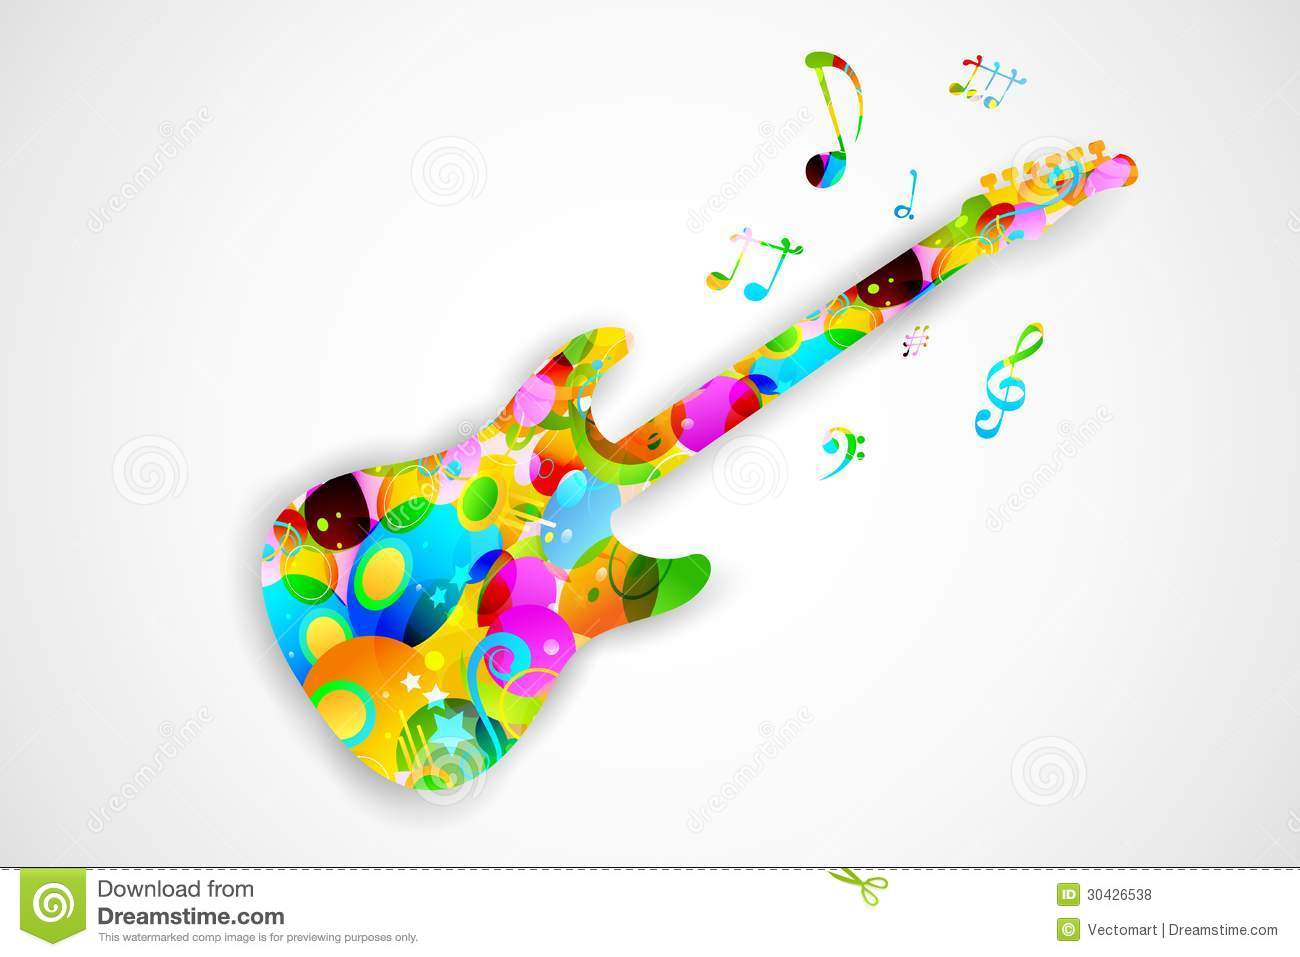 Colorful Guitar Stock Vector Illustration Of Decorative 30426538